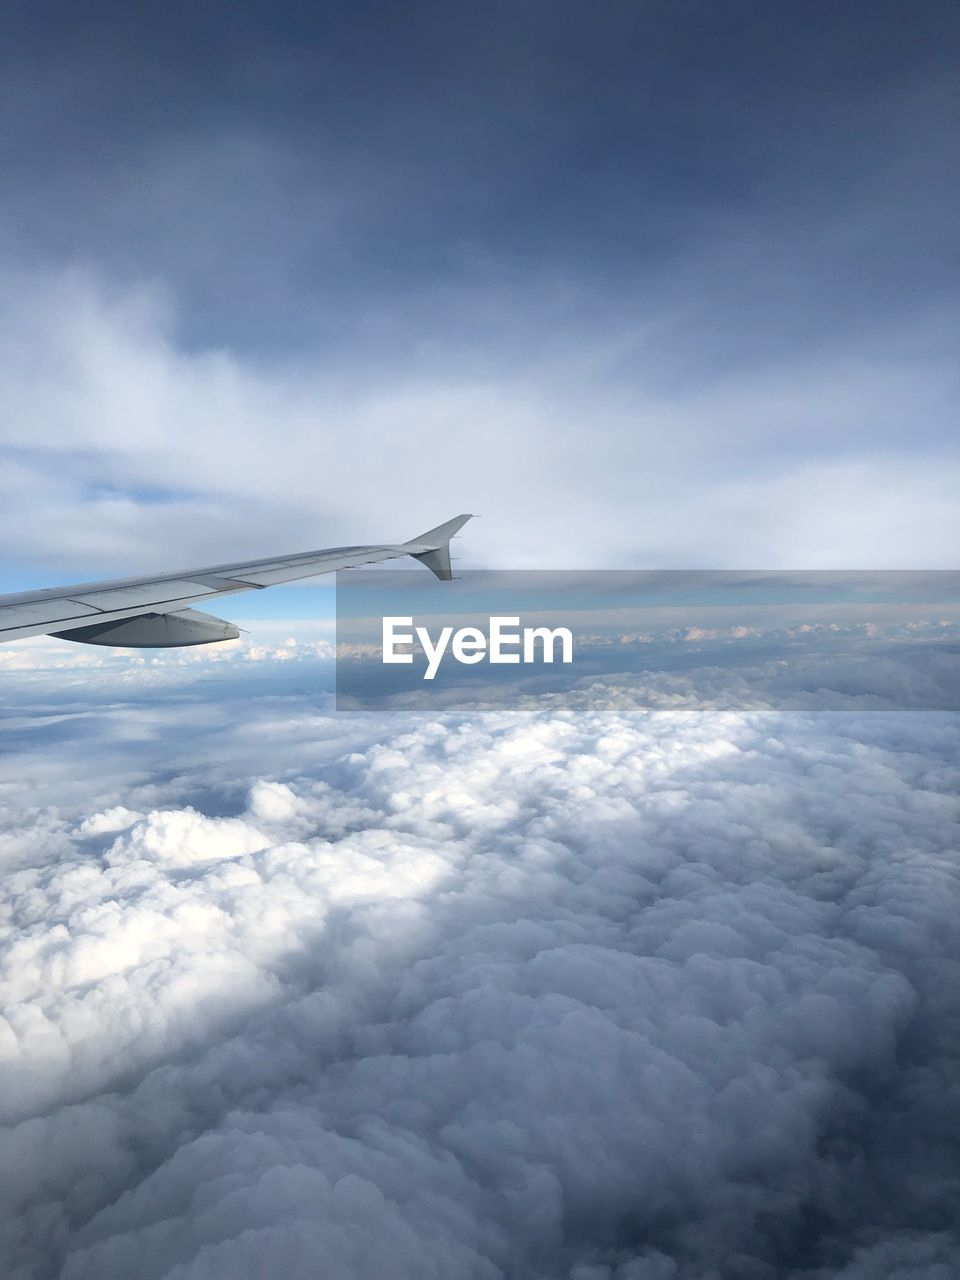 cloud - sky, airplane, sky, air vehicle, flying, mode of transportation, scenics - nature, beauty in nature, transportation, aircraft wing, cloudscape, no people, mid-air, travel, nature, day, motion, aerial view, on the move, outdoors, softness, above, meteorology, plane